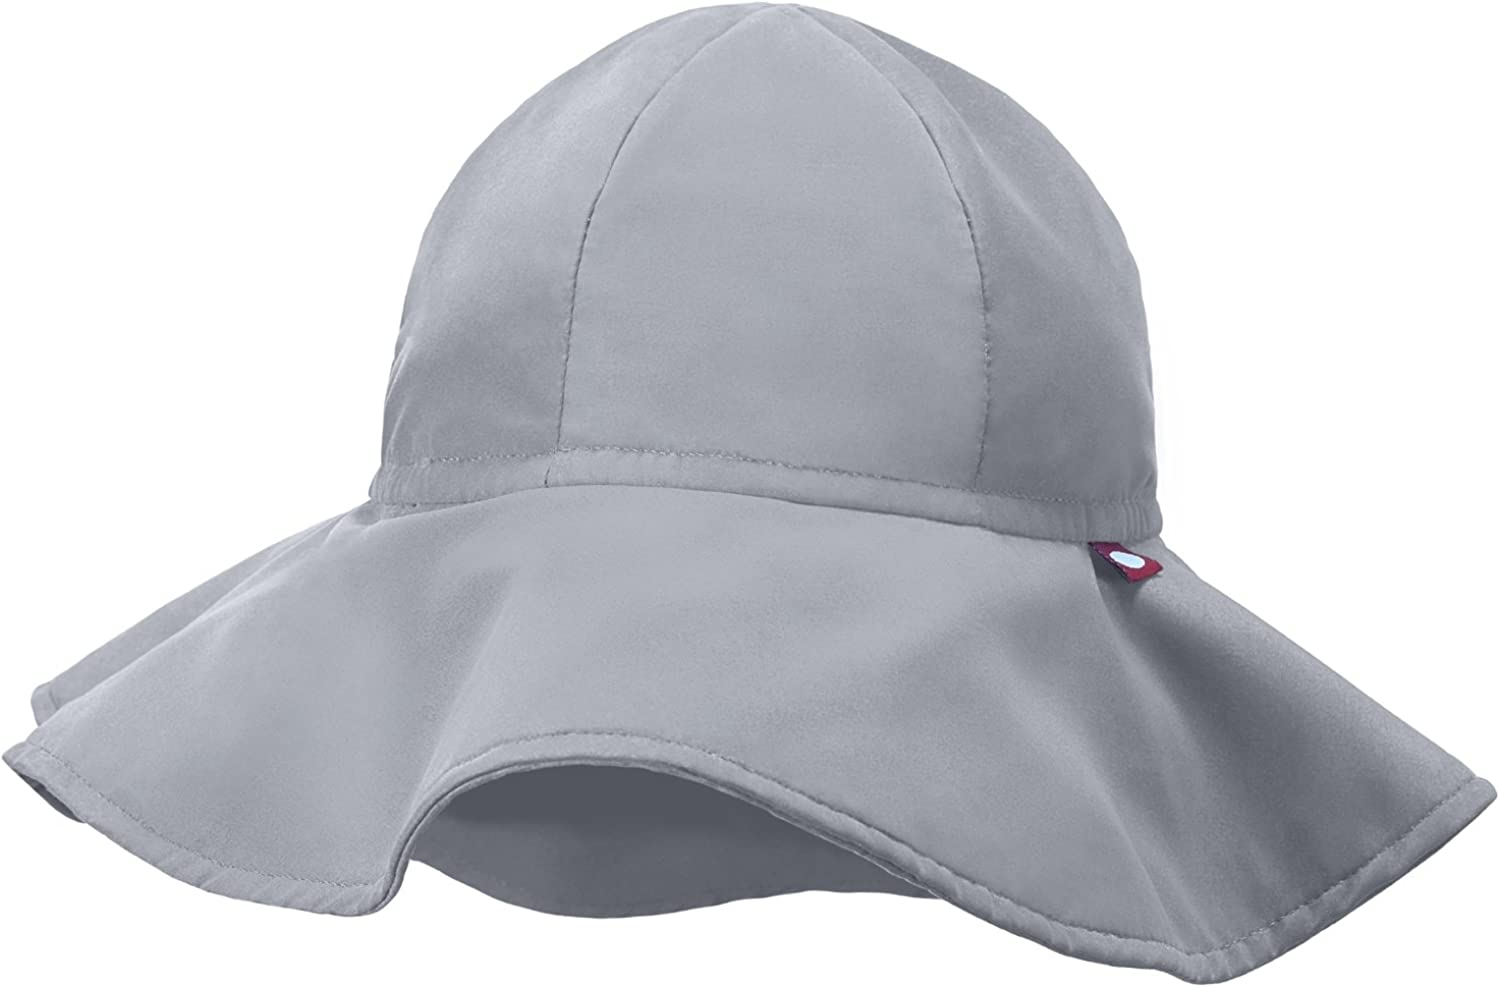 for Boys and Girls Sun Hat for Beach Pool Park City Threads Floppy Swim Hat with SPF50